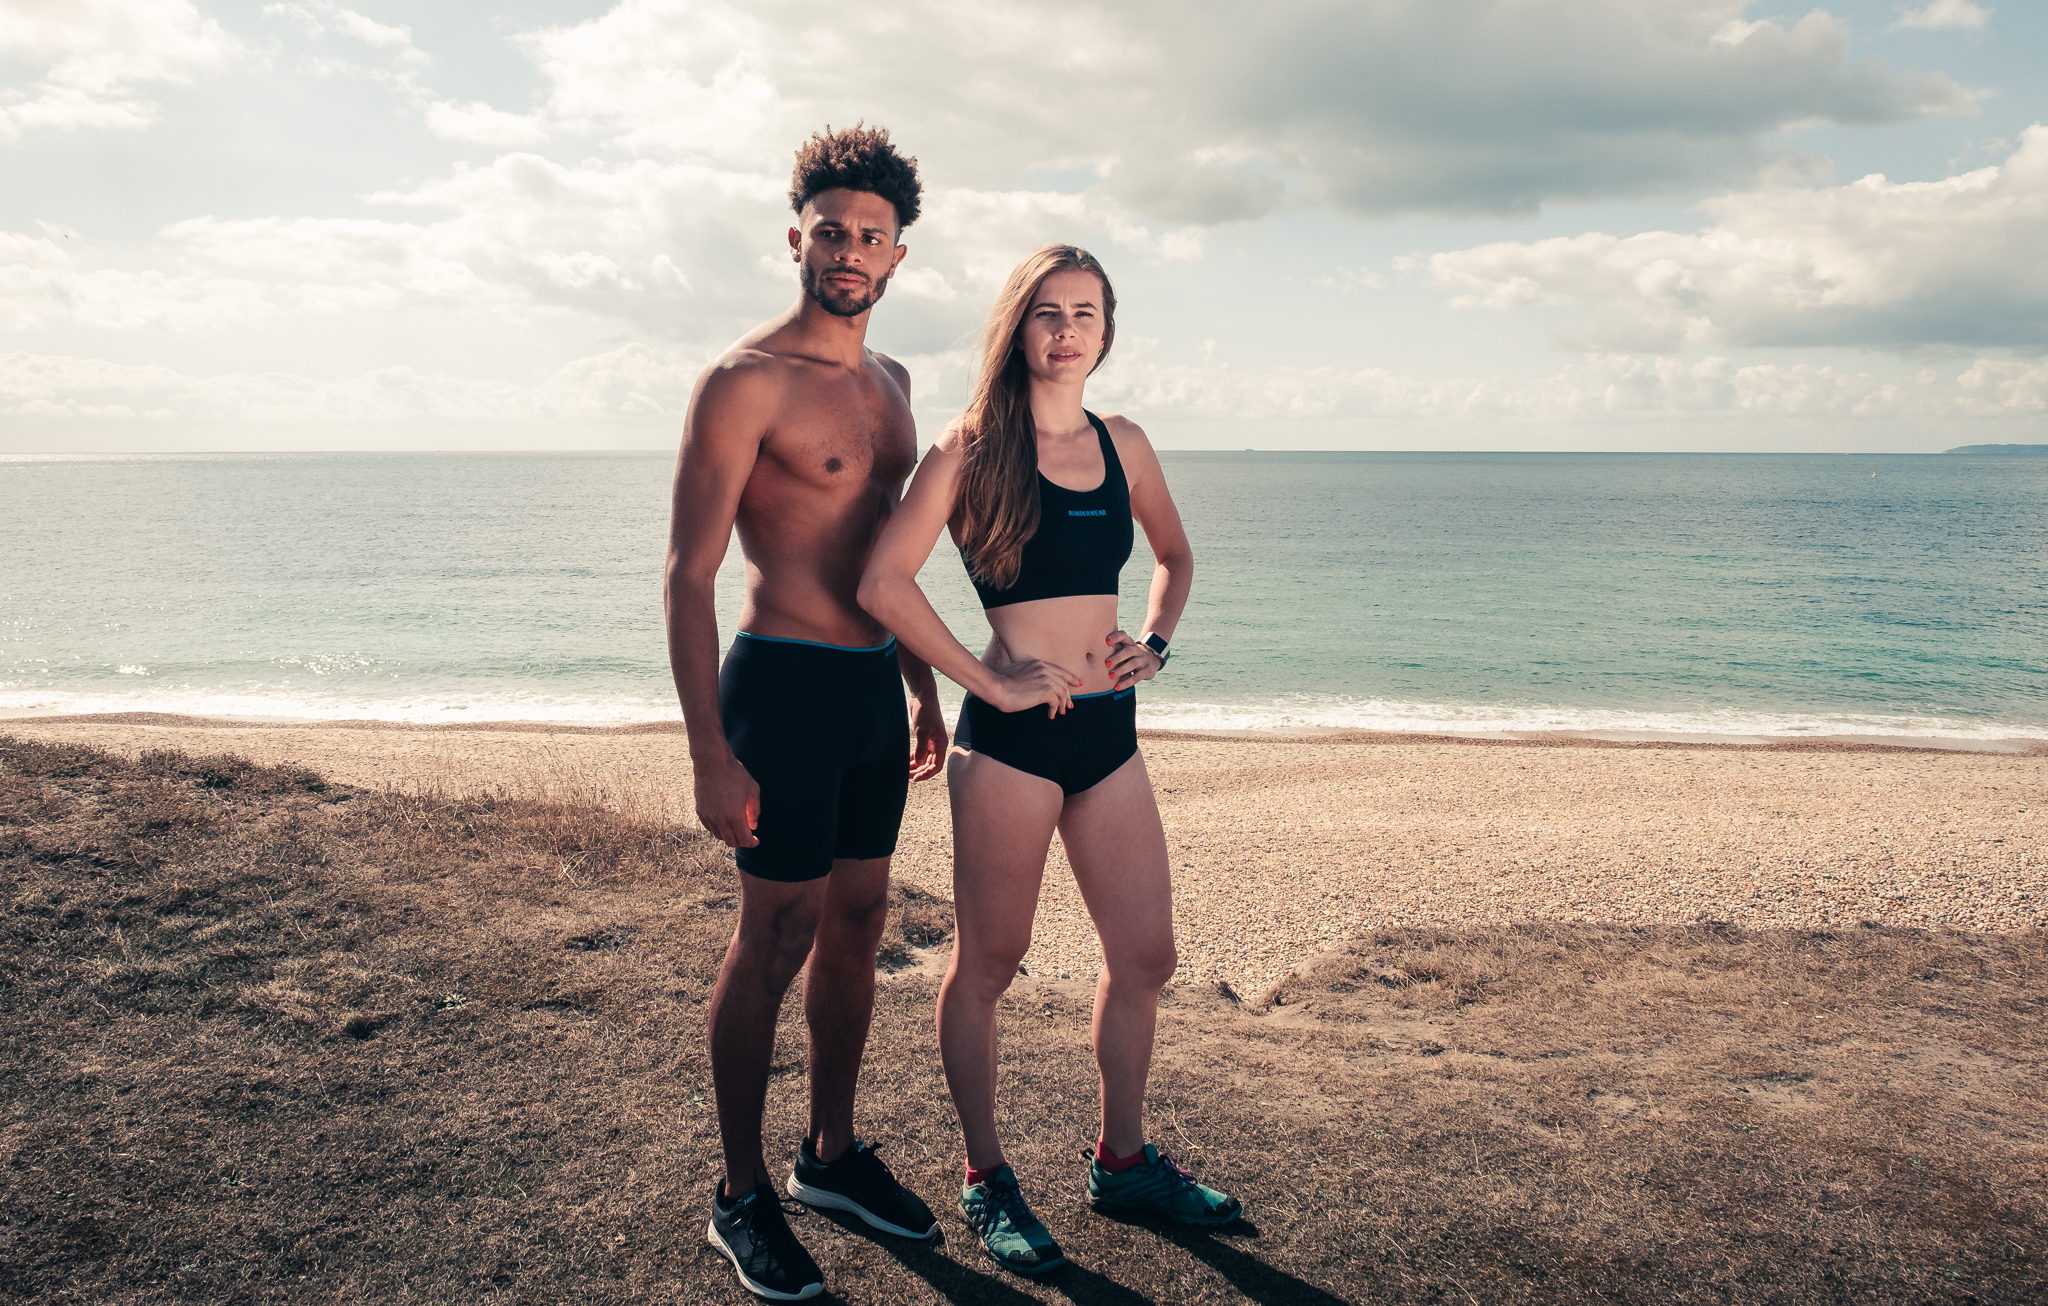 Poole firm Runderwear has announced a partnership with England Athletics